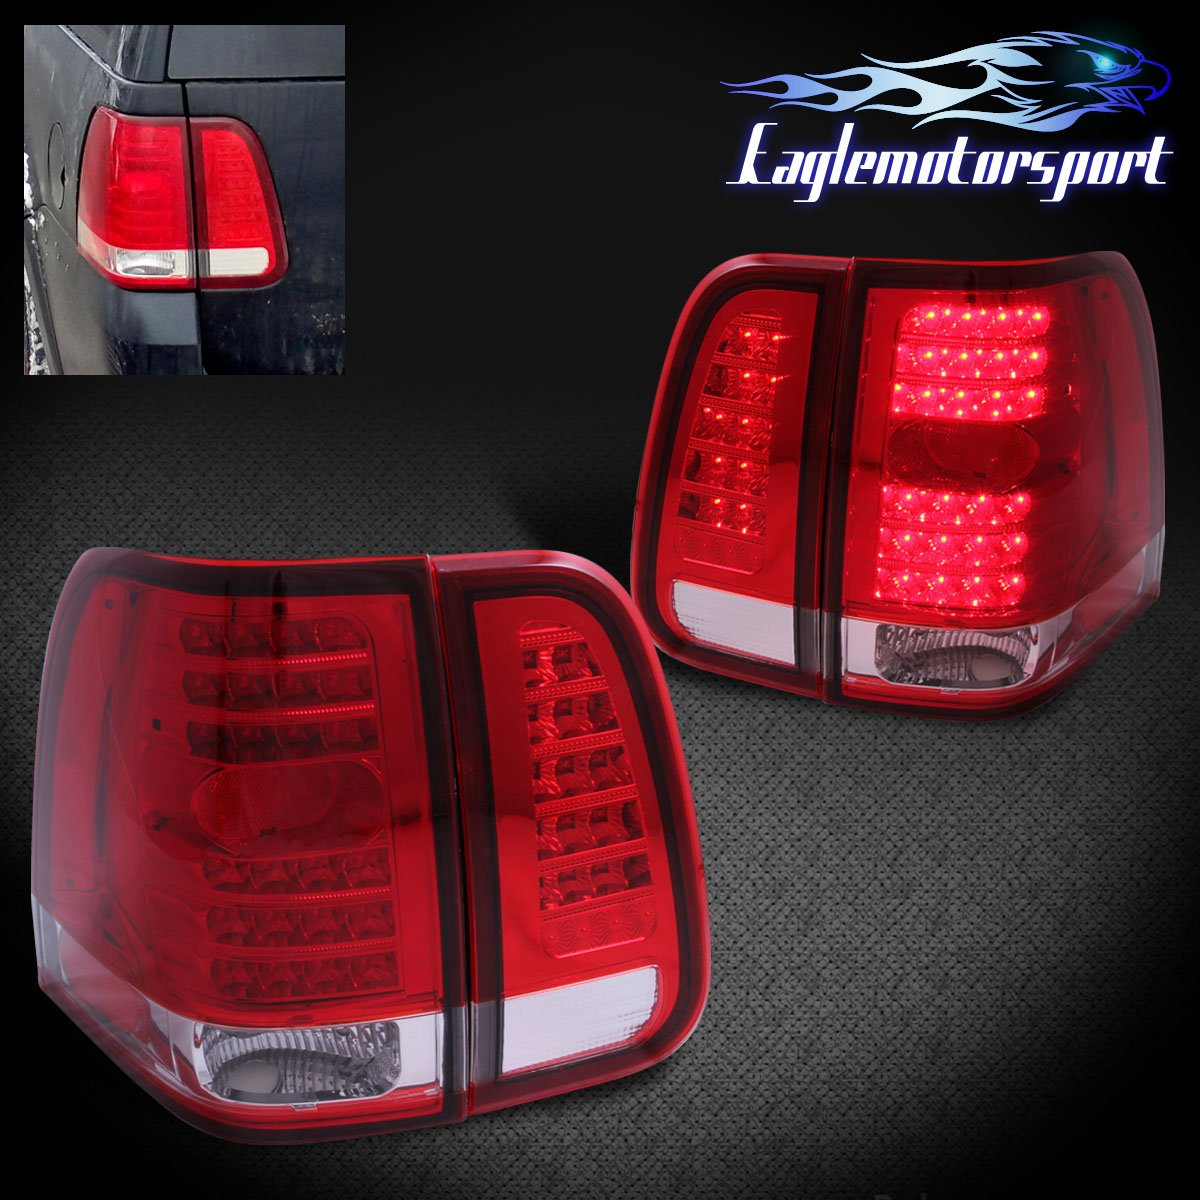 2006 Acura Tl Tail Lights For Sale: 2003 2004 2005 2006 Lincoln Navigator Red LED Clear Tail